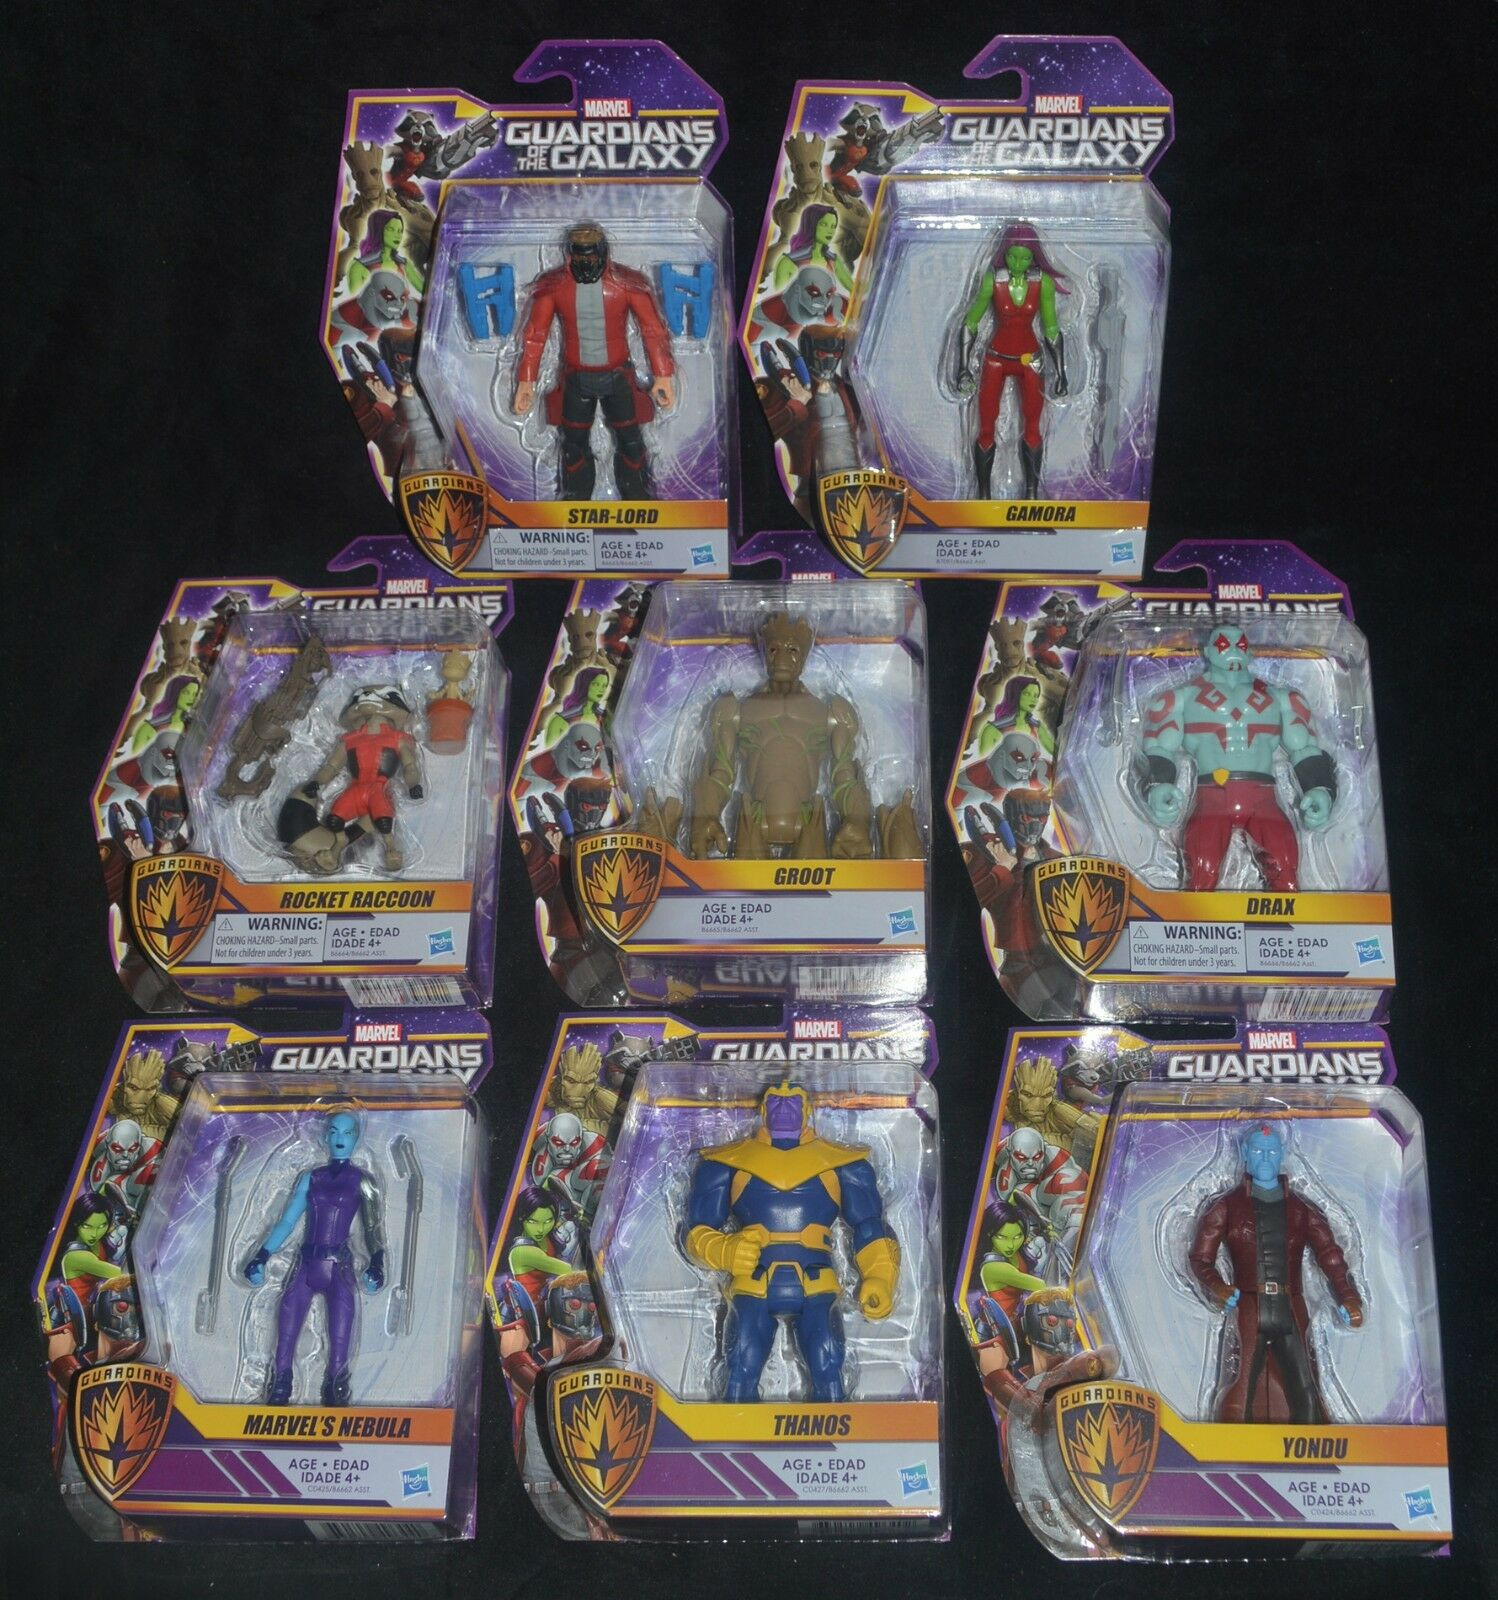 GUARDIANS OF THE GALAXY Animated Set of 8 Marvel Marvel Marvel Action Figures w THANOS MIP 537a26